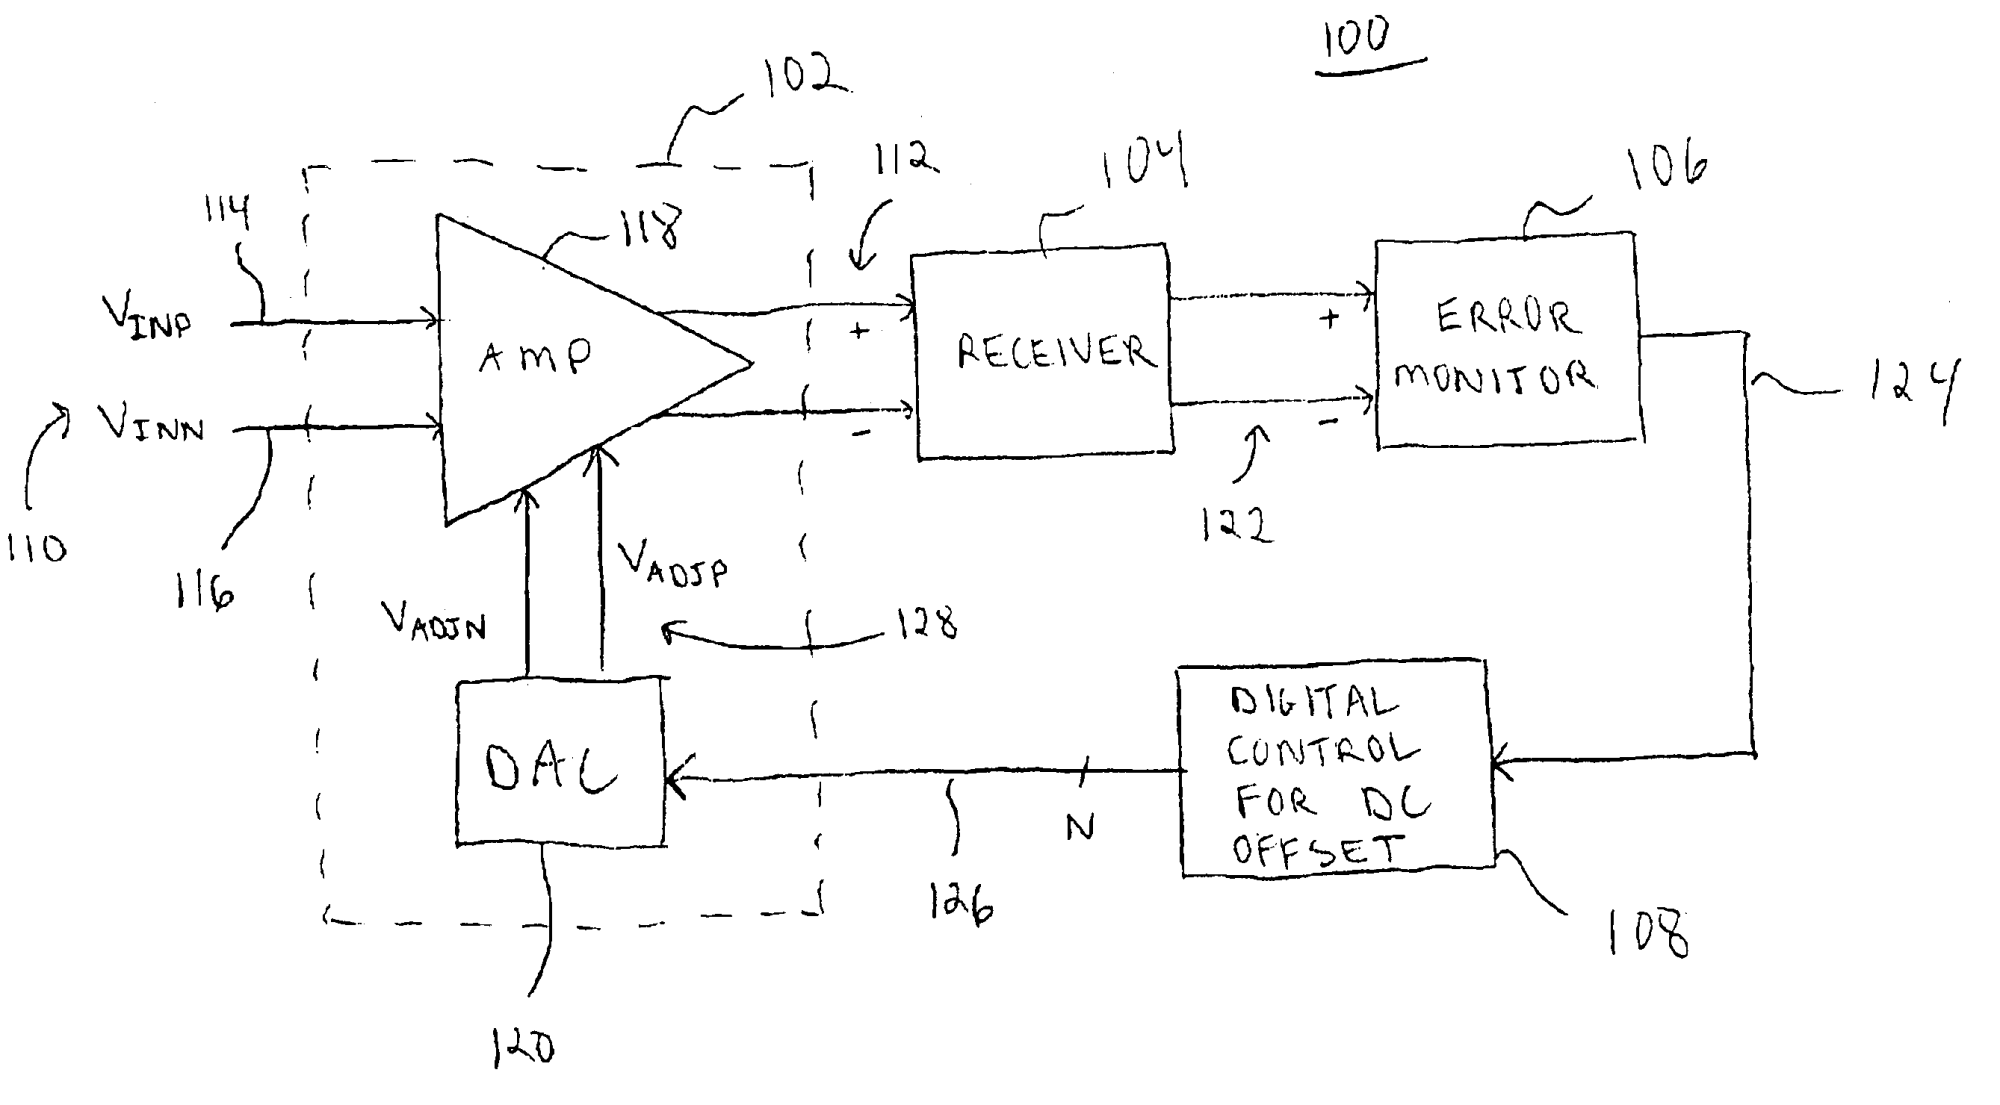 hight resolution of patent us6897700 amplifier with digital dc offset cancellation circuit diagram to offset large dc offset amplifiercircuit